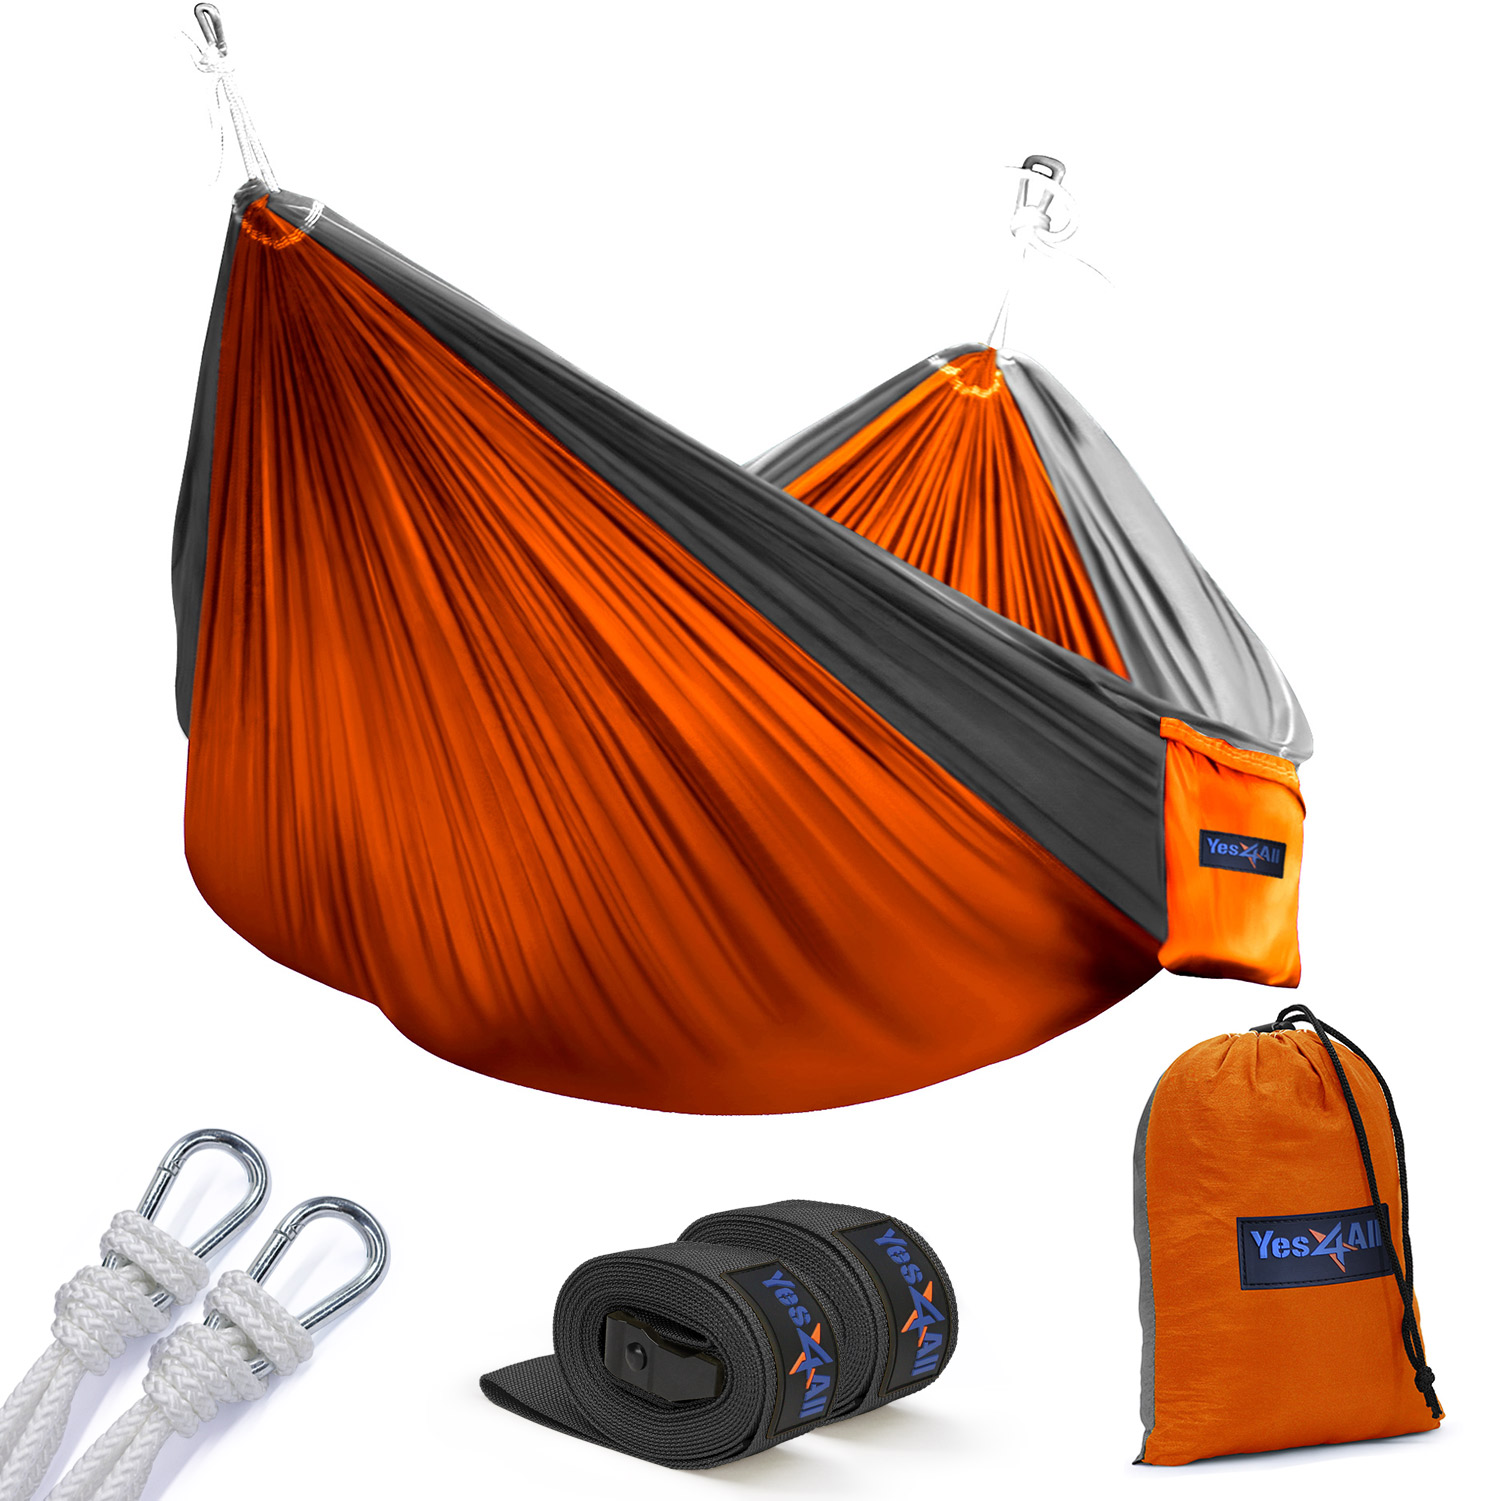 Yes4All Ultralight Portable Parachute Nylon Double Hammock With Tree Straps - Carry Bag Included